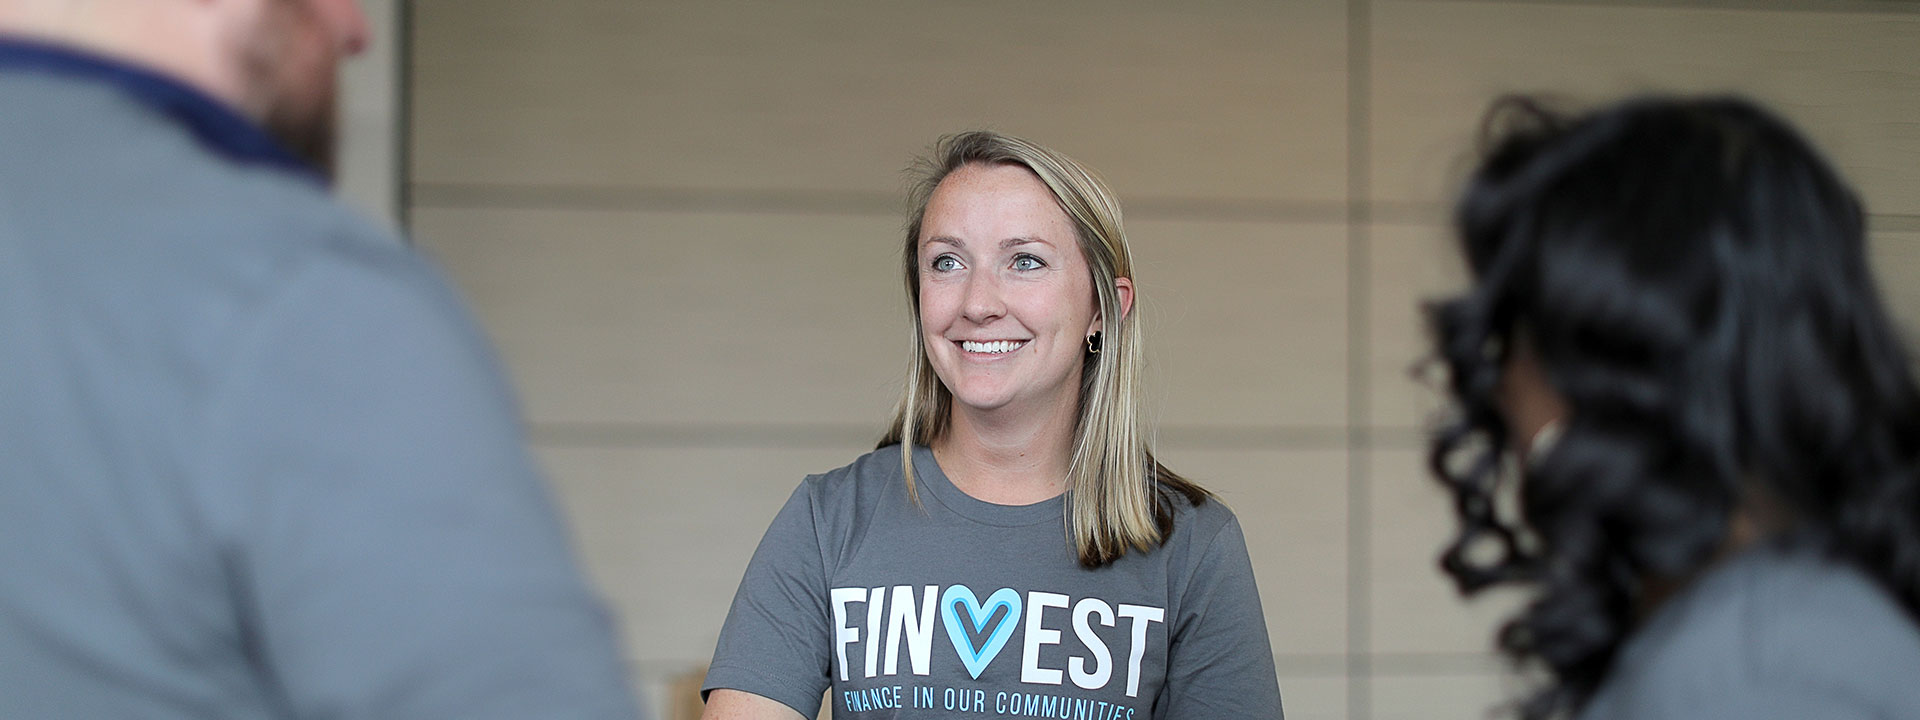 Shannon talking to colleagues while wearing a FINVEST shirt